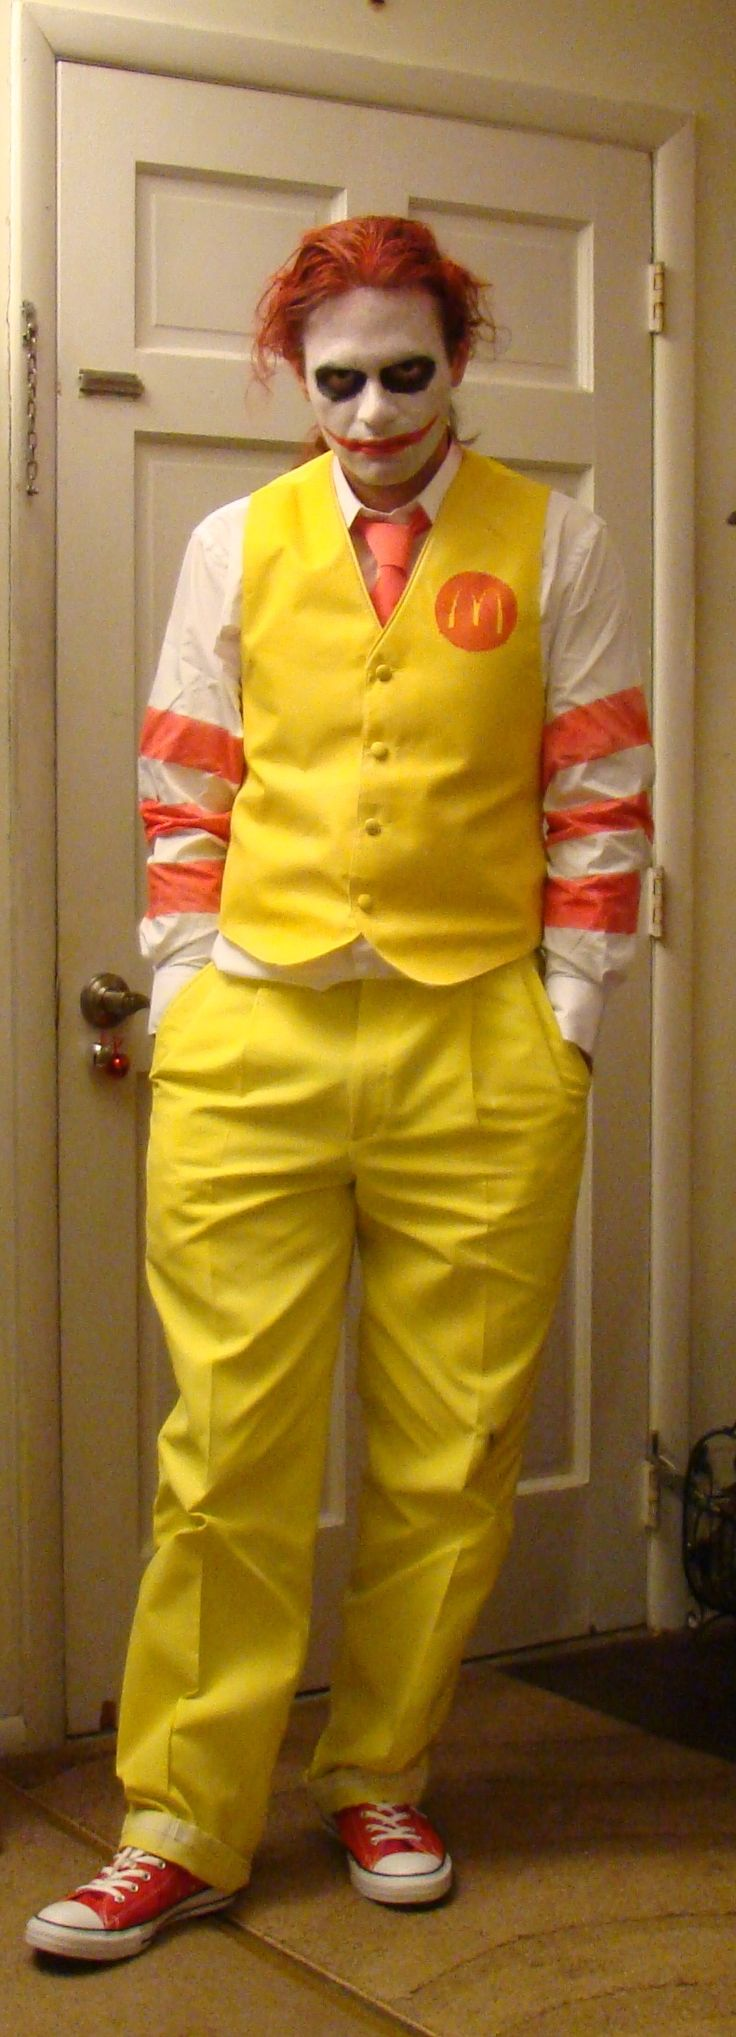 new ronald mcdonald costume - Google Search